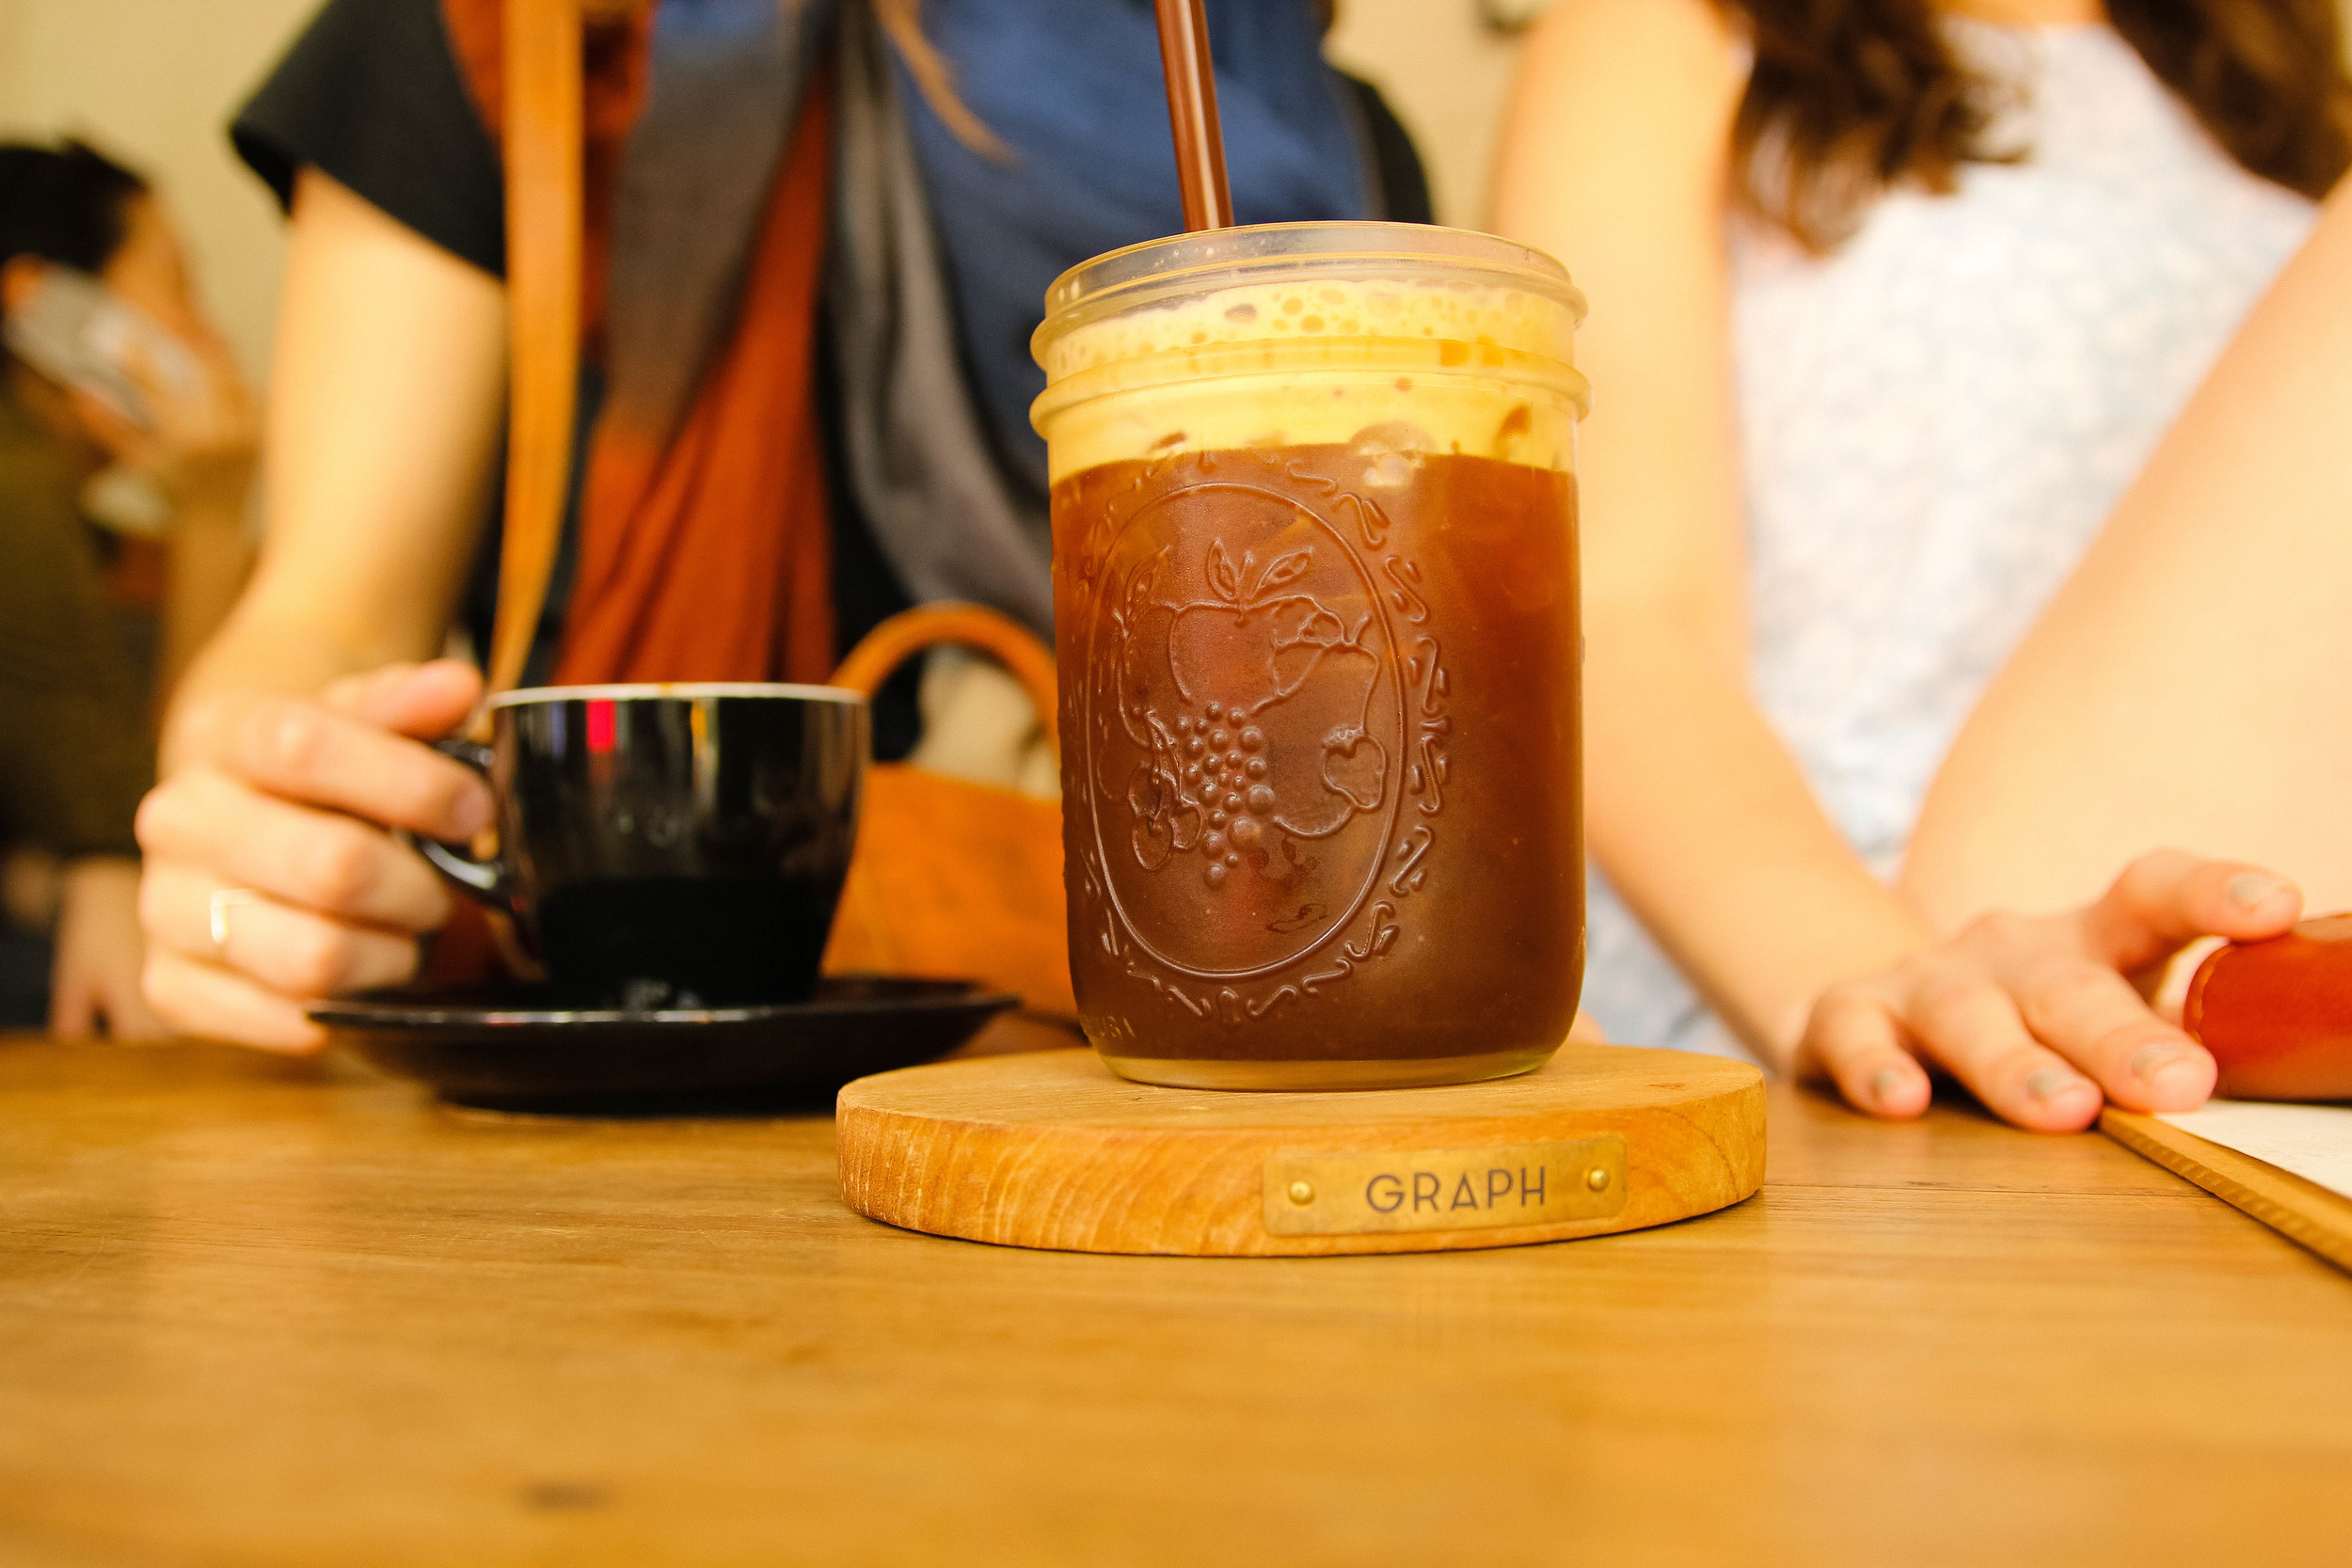 Chiang Mai Thailand Graph Cafe coffee iced latte